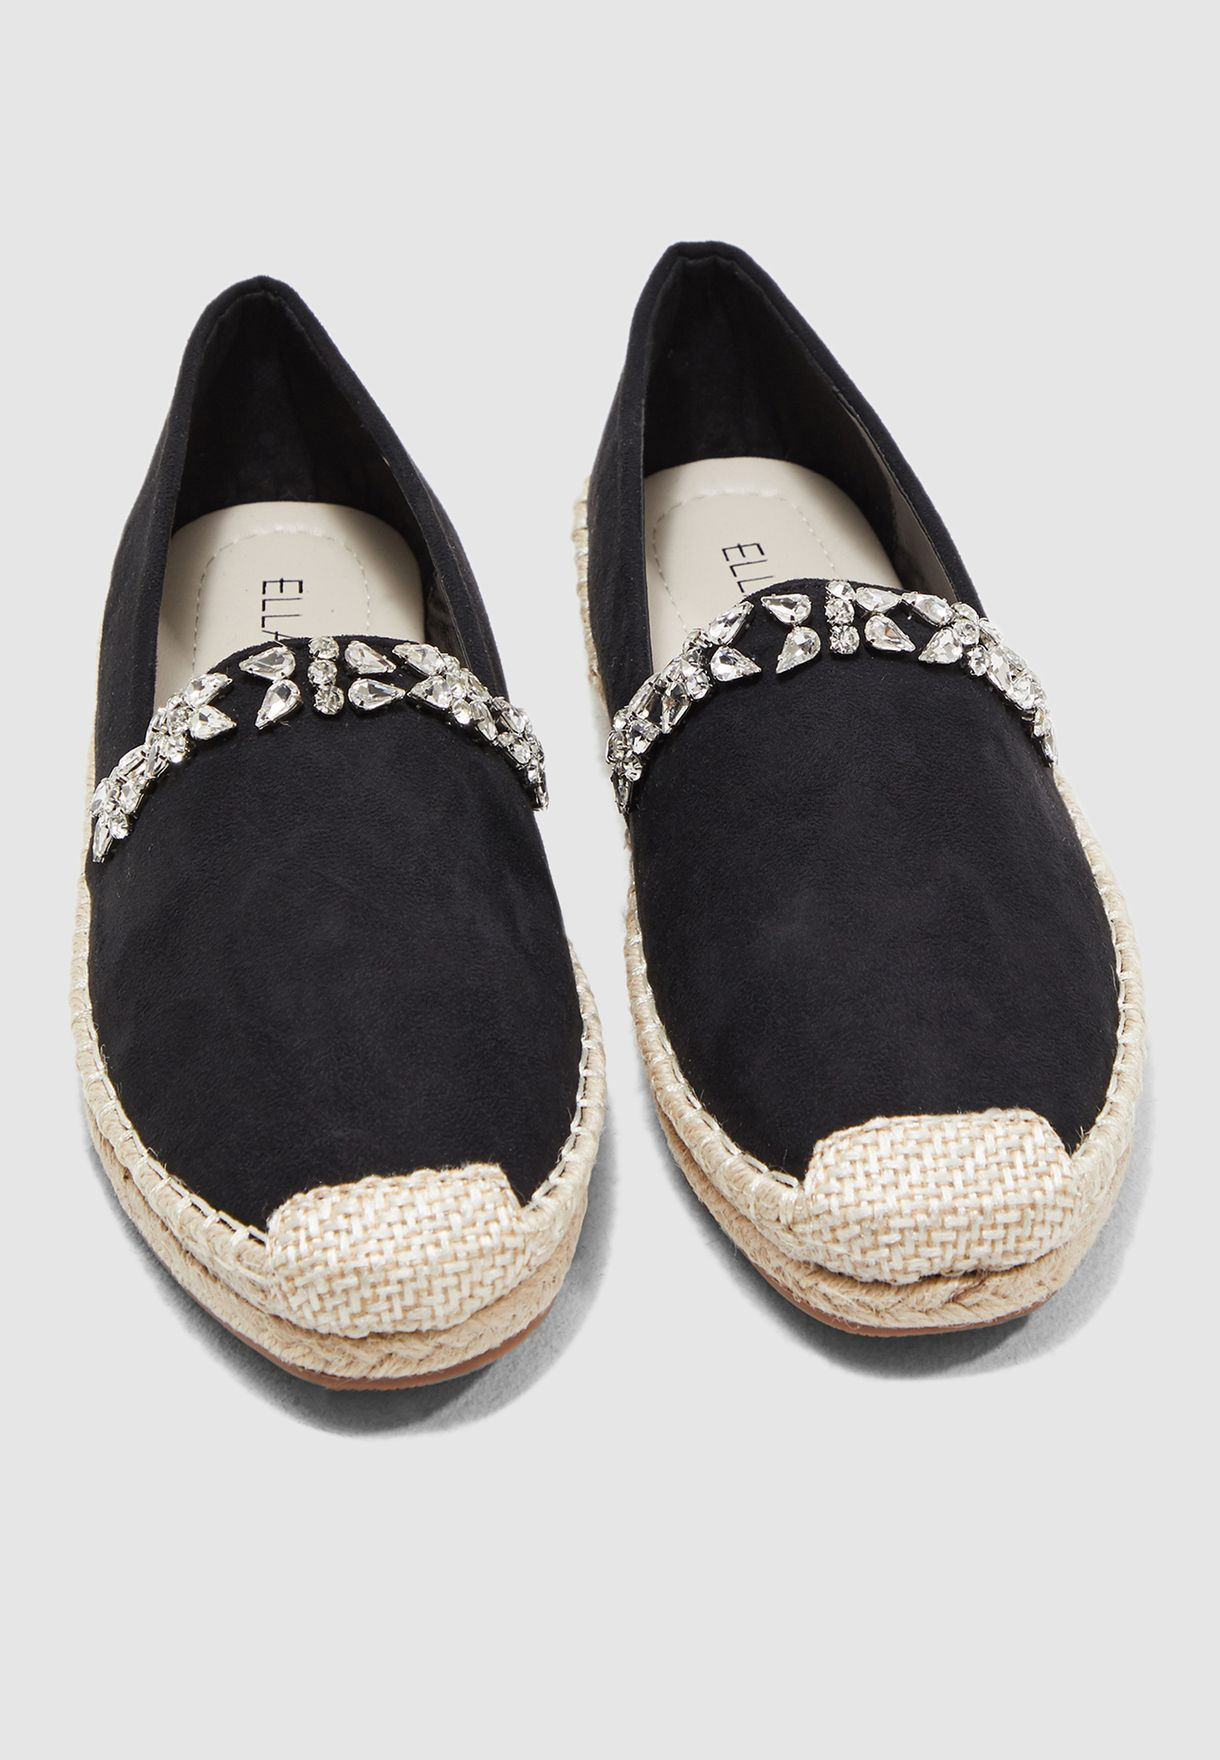 Espadrilles With Embellishment Detail